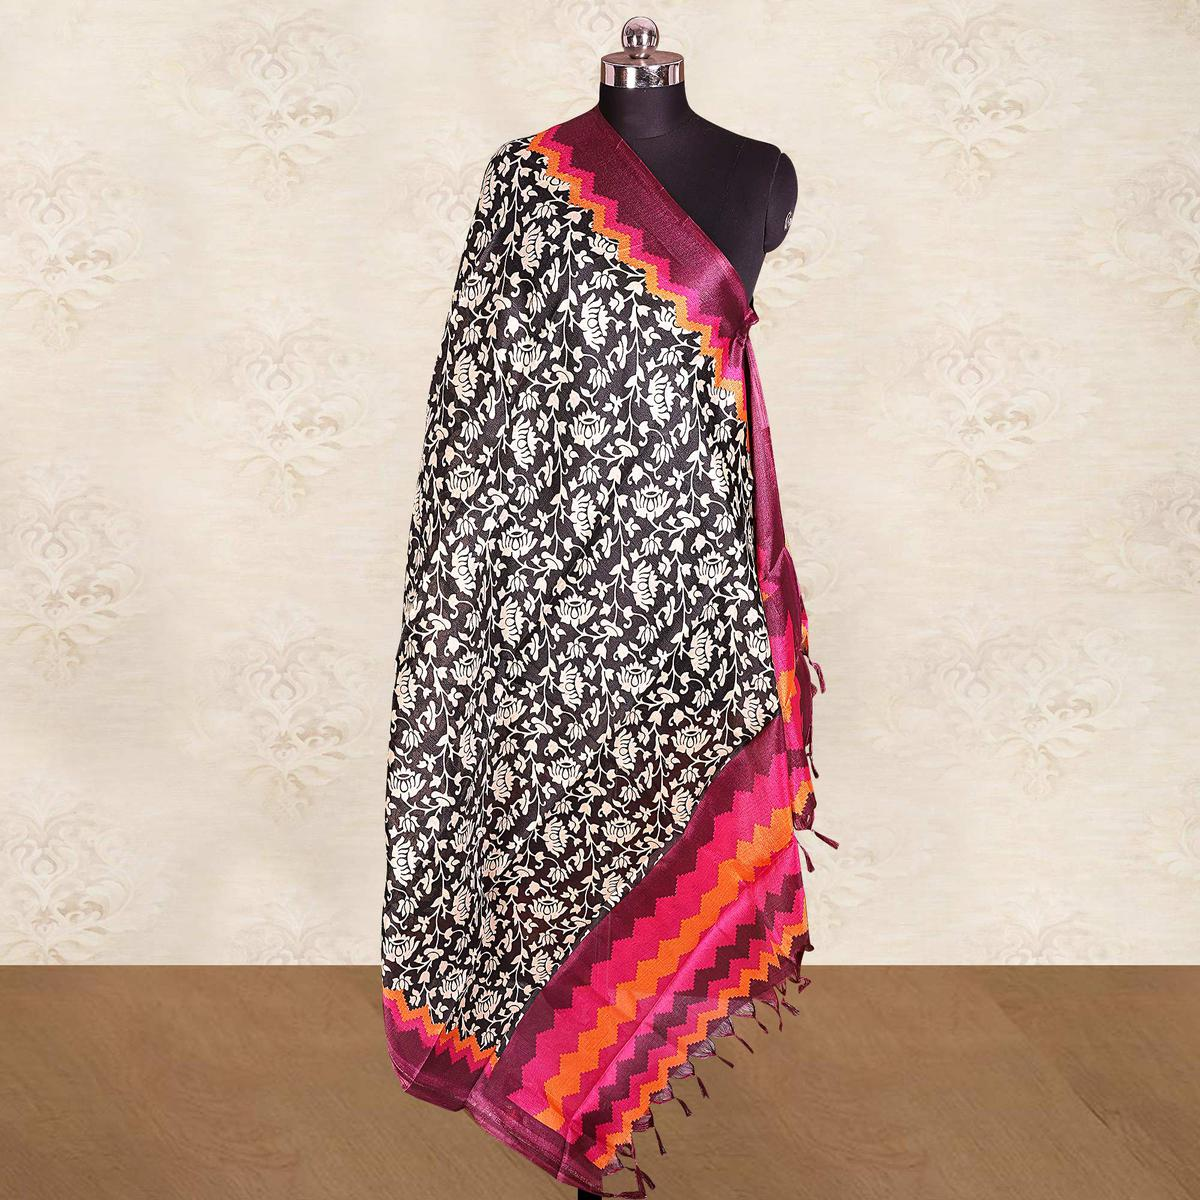 Majesty Black-Pink Colored Casual Wear Printed Cotton Blend Dupatta With Tassels